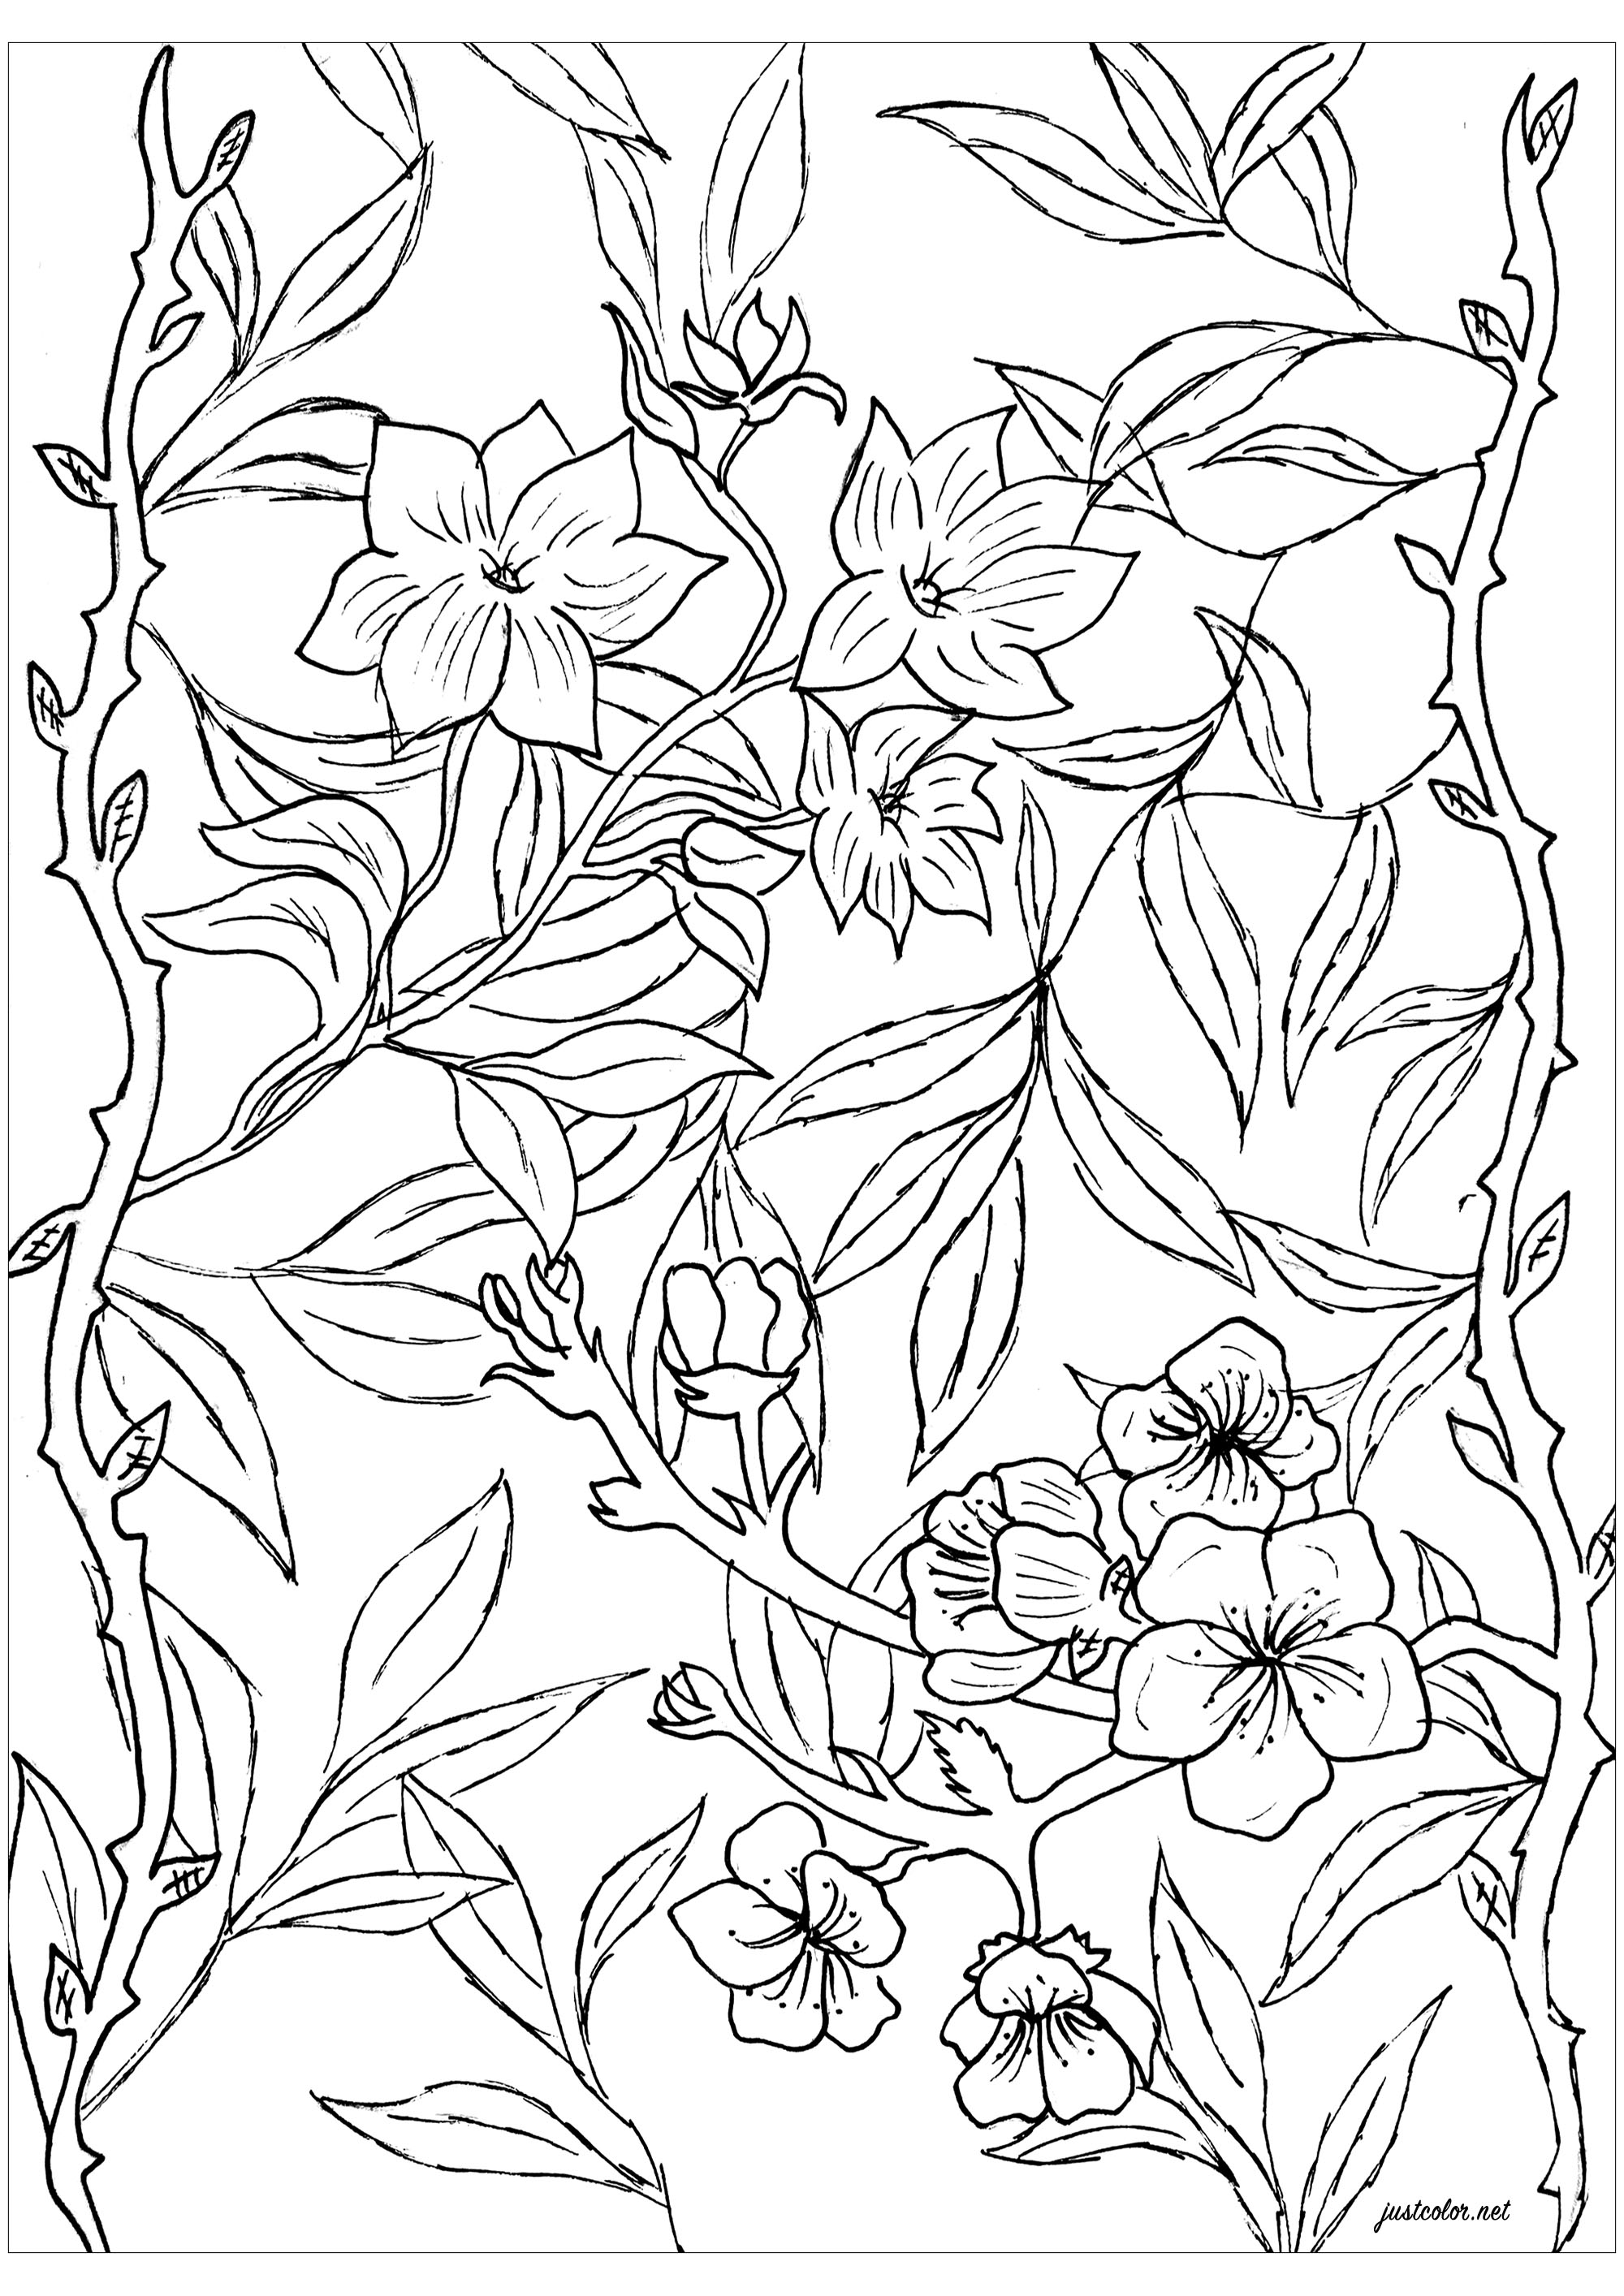 Cute flowers to color